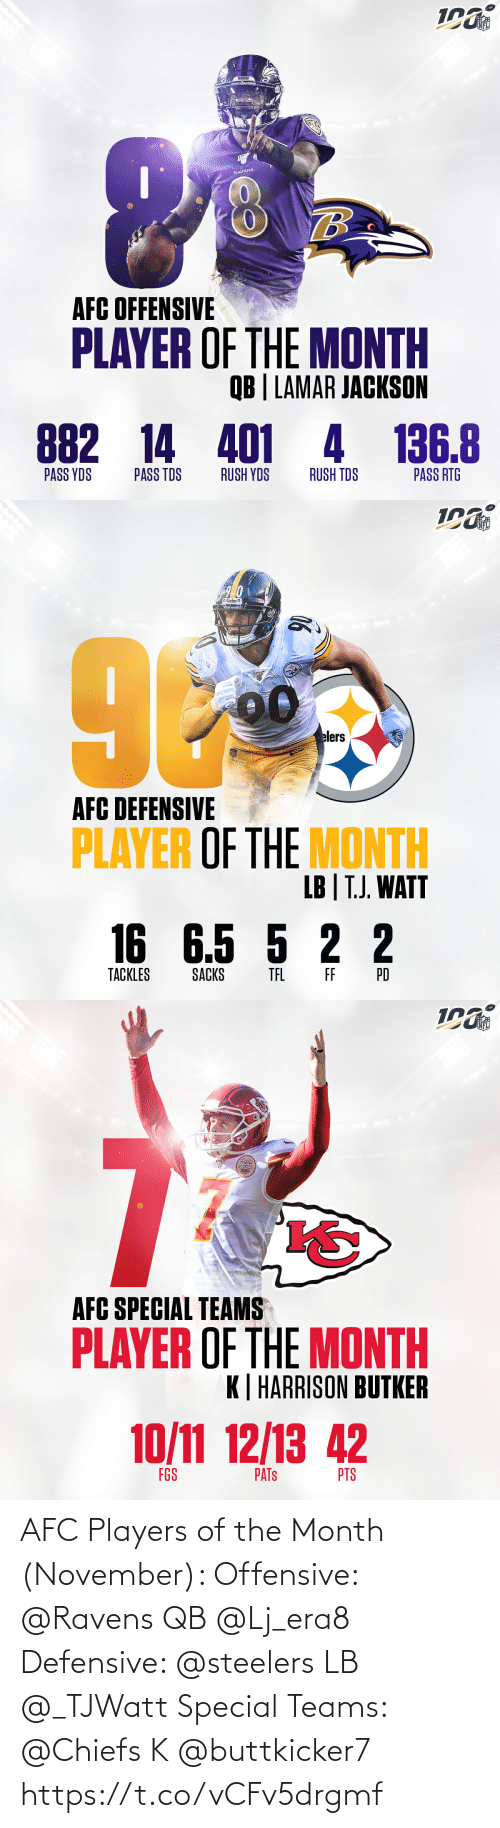 Defensive: NFL  RAVENS  AFC OFFENSIVE  PLAYER OF THE MONTH  QB | LAMAR JACKSON  882 14 401 4 136.8  PASS YDS  PASS TDS  RUSH YDS  RUSH TDS  PASS RTG   NFL  elers  AFC DEFENSIVE  PLAYER OF THE MONTH  LB | T.J. WATT  16 6.5 5 2 2  TACKLES  SACKS  TEL  FF  PD   NFL  AFC SPECIAL TEAMS  PLAYER OF THE MONTH  K| HARRISON BUTKER  10/11 12/13 42  FGS  PTS  PATS AFC Players of the Month (November):   Offensive: @Ravens QB @Lj_era8  Defensive: @steelers LB @_TJWatt  Special Teams: @Chiefs K @buttkicker7 https://t.co/vCFv5drgmf